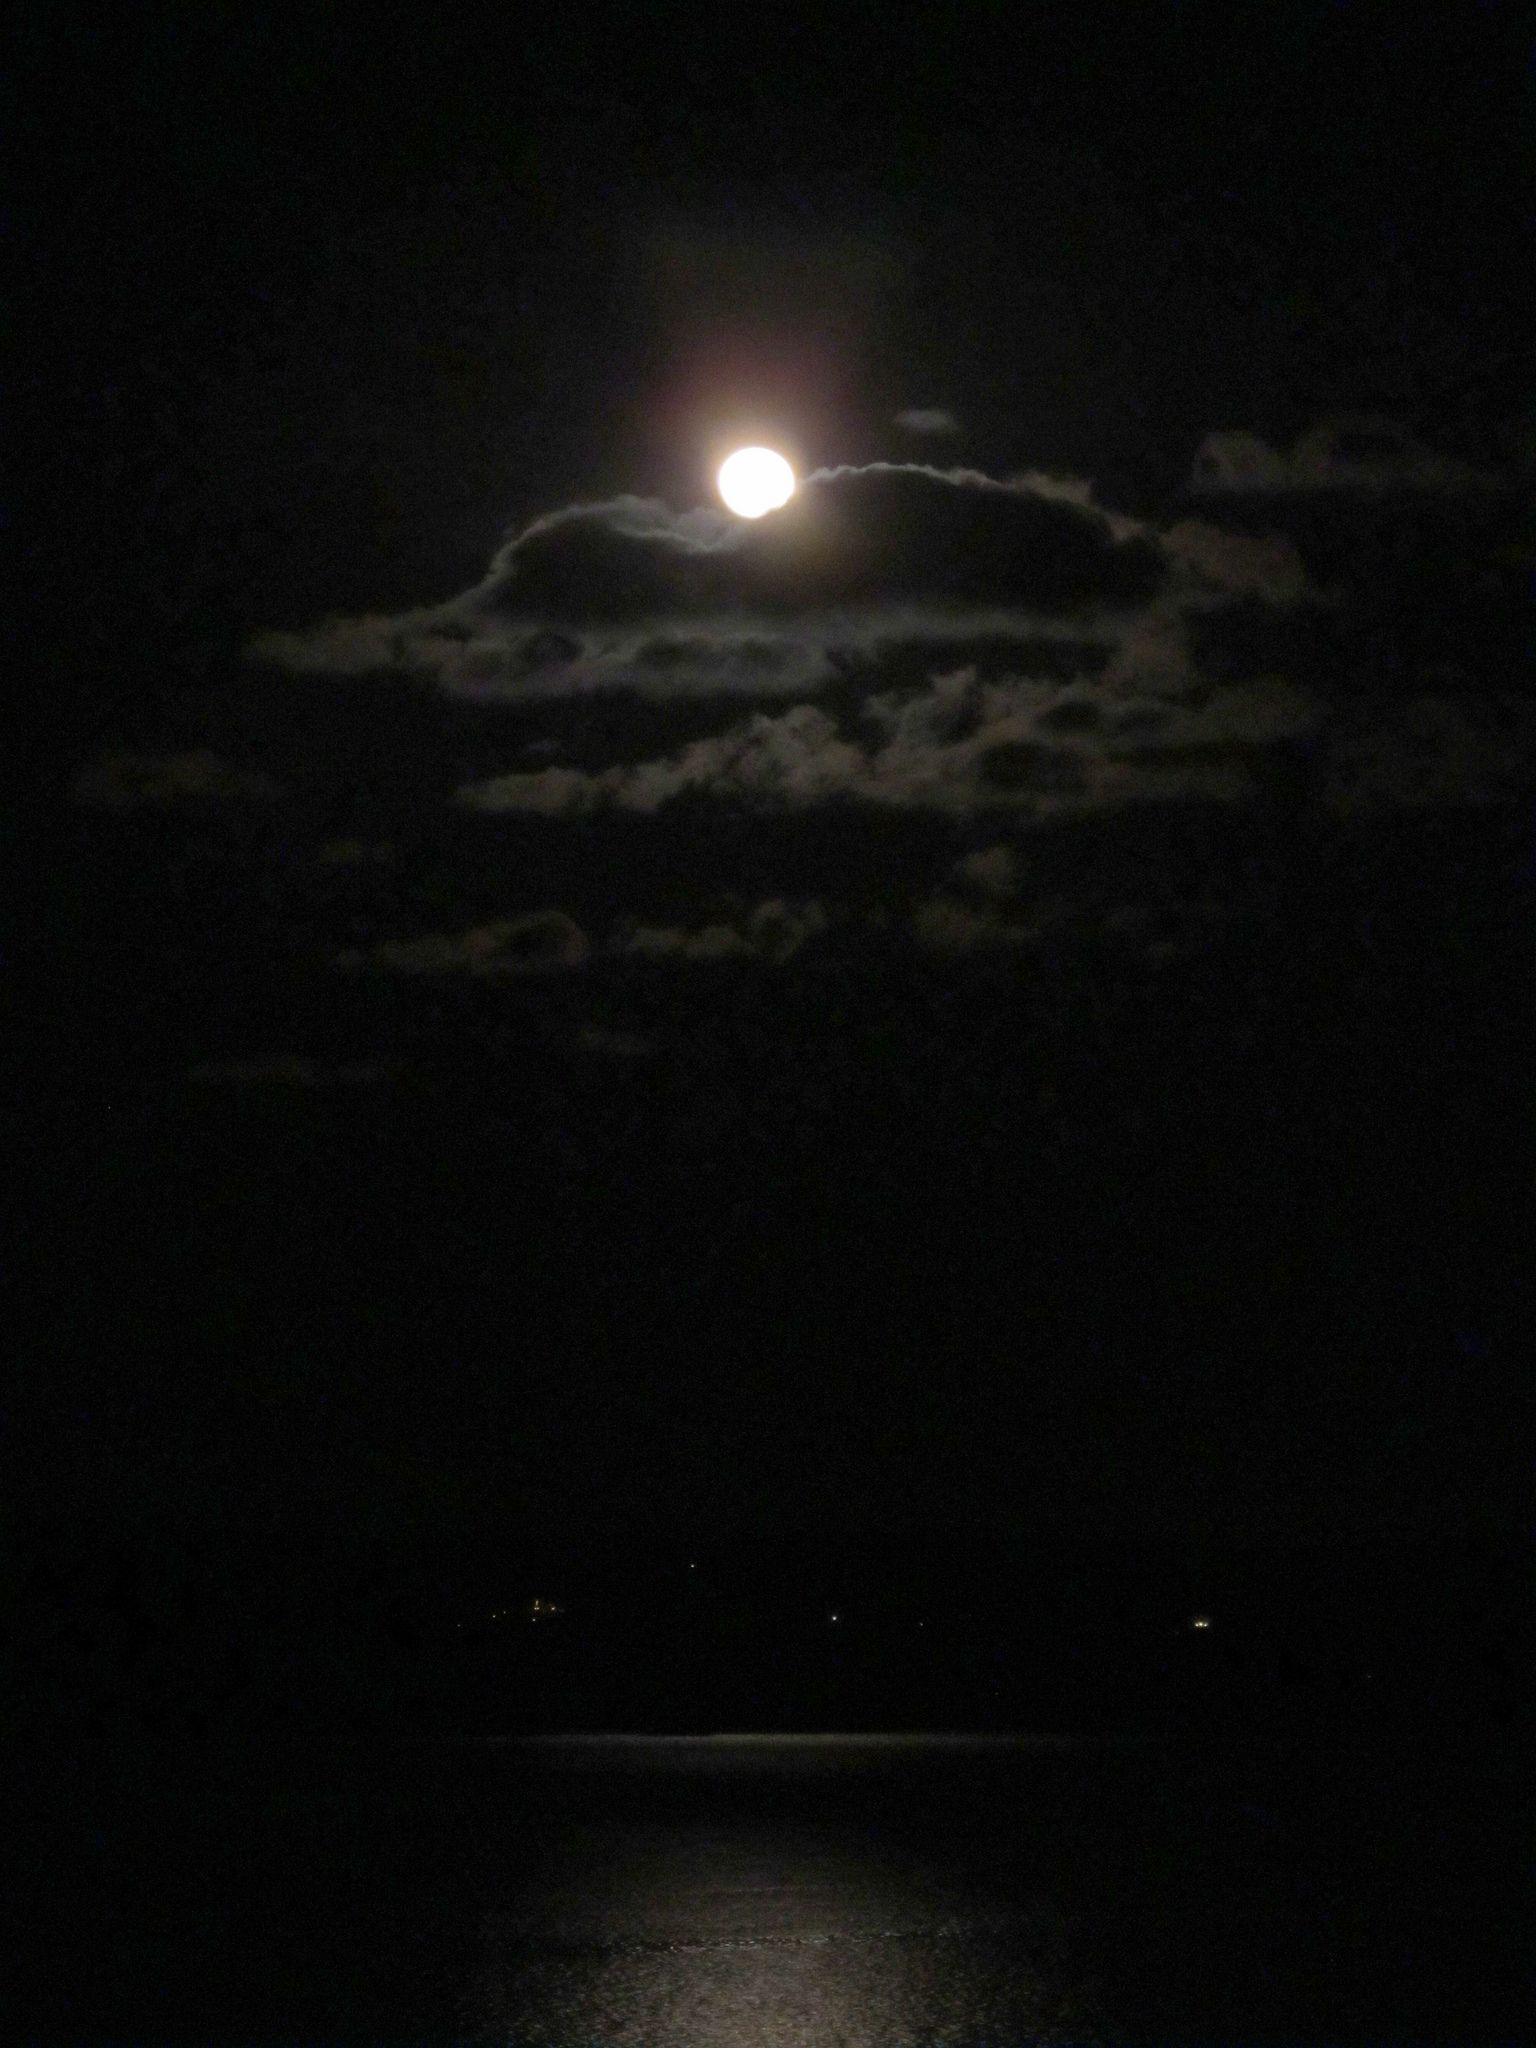 https://flic.kr/p/bUFAHN | Full Moon by Amy courtesy of Flickr Creative Commons licensed by CC BY 2.0 https://creativecommons.org/licenses/by/2.0/